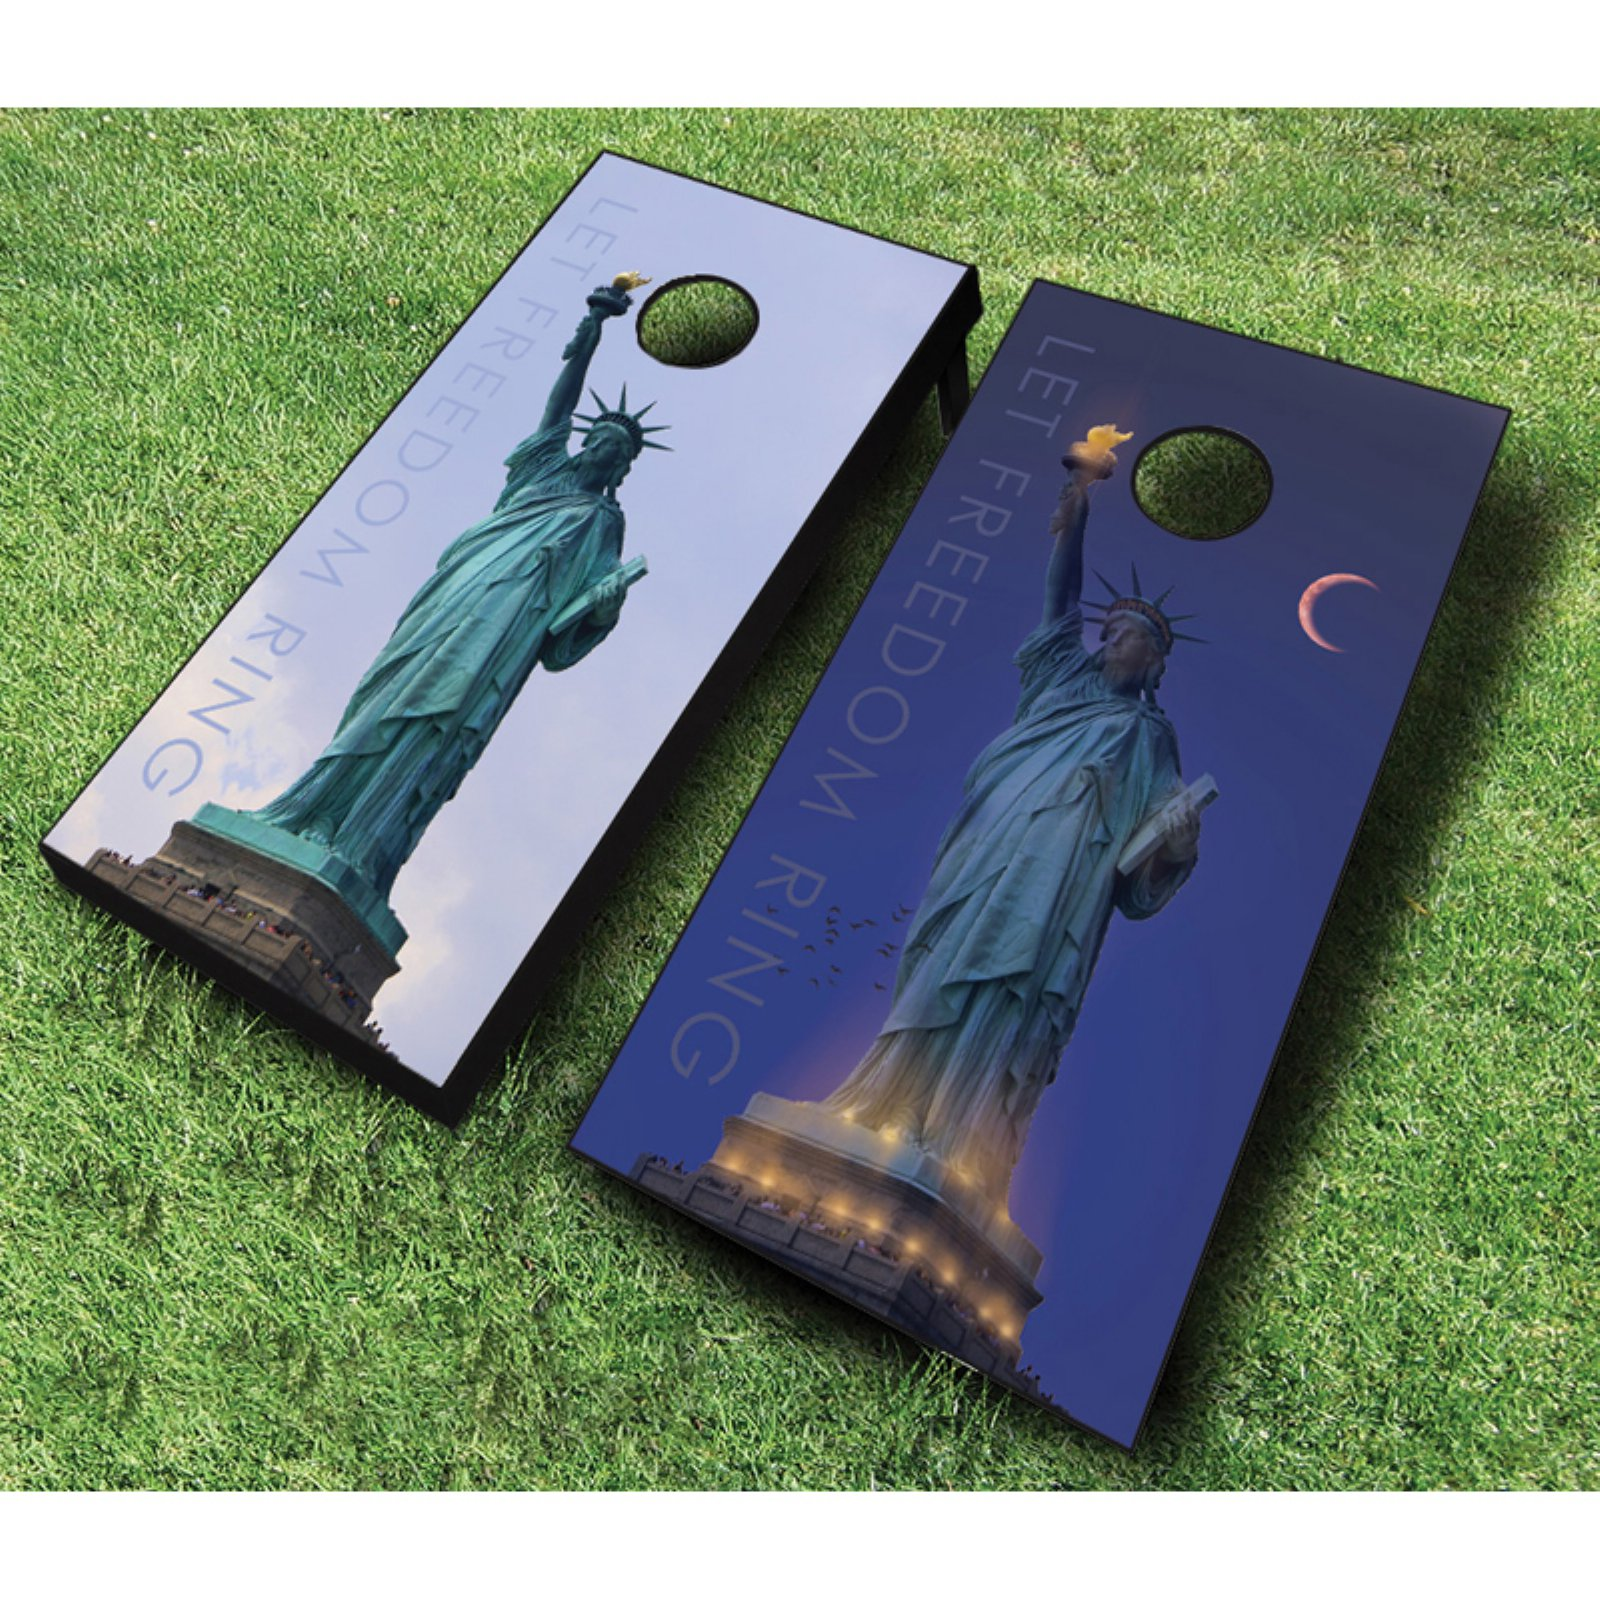 AJJ Cornhole Let Freedom Ring Cornhole Set with Bags by